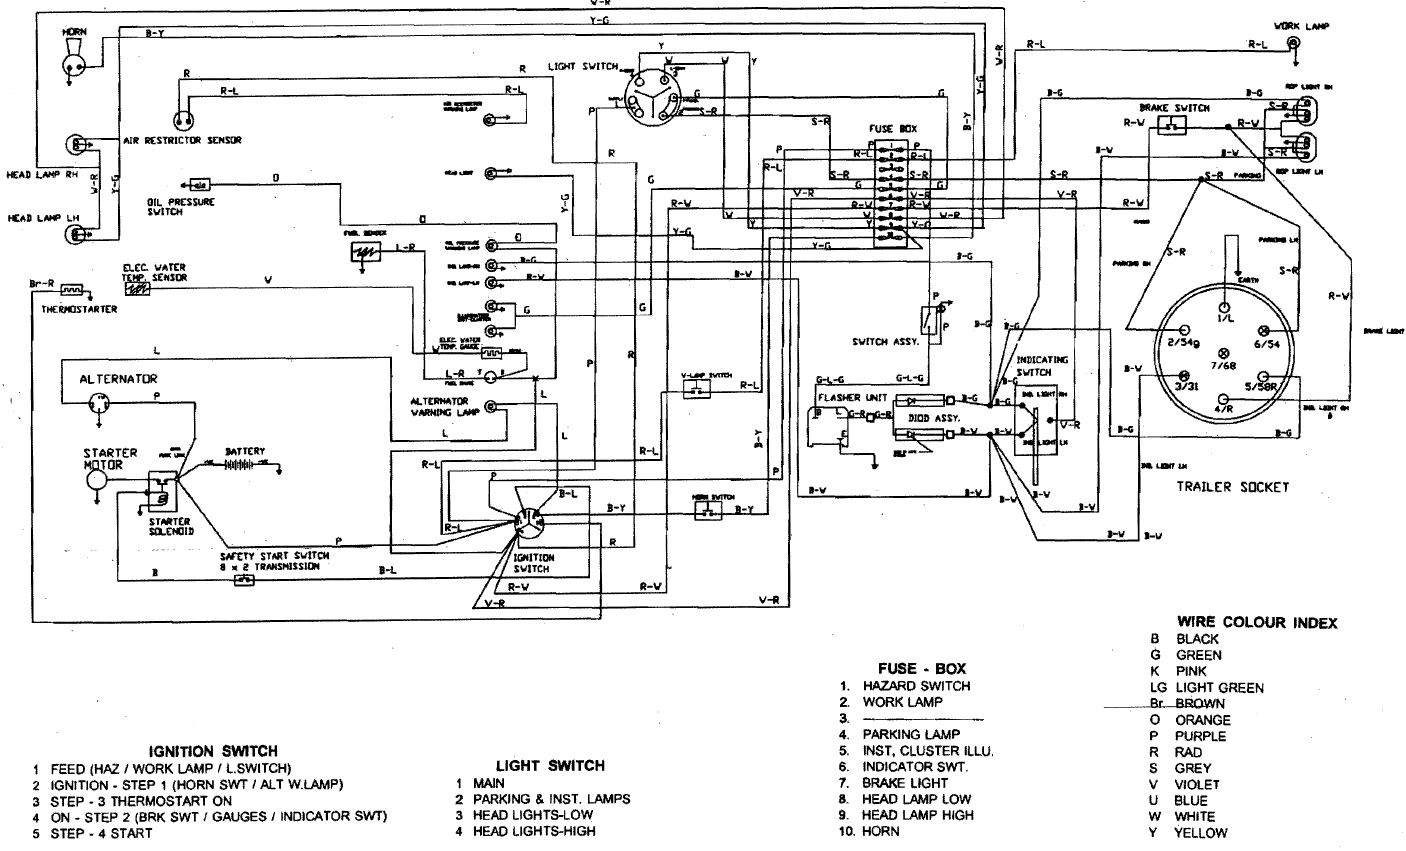 Ignition Switch Wiring Diagram - Generator Transfer Switch Wiring Diagram